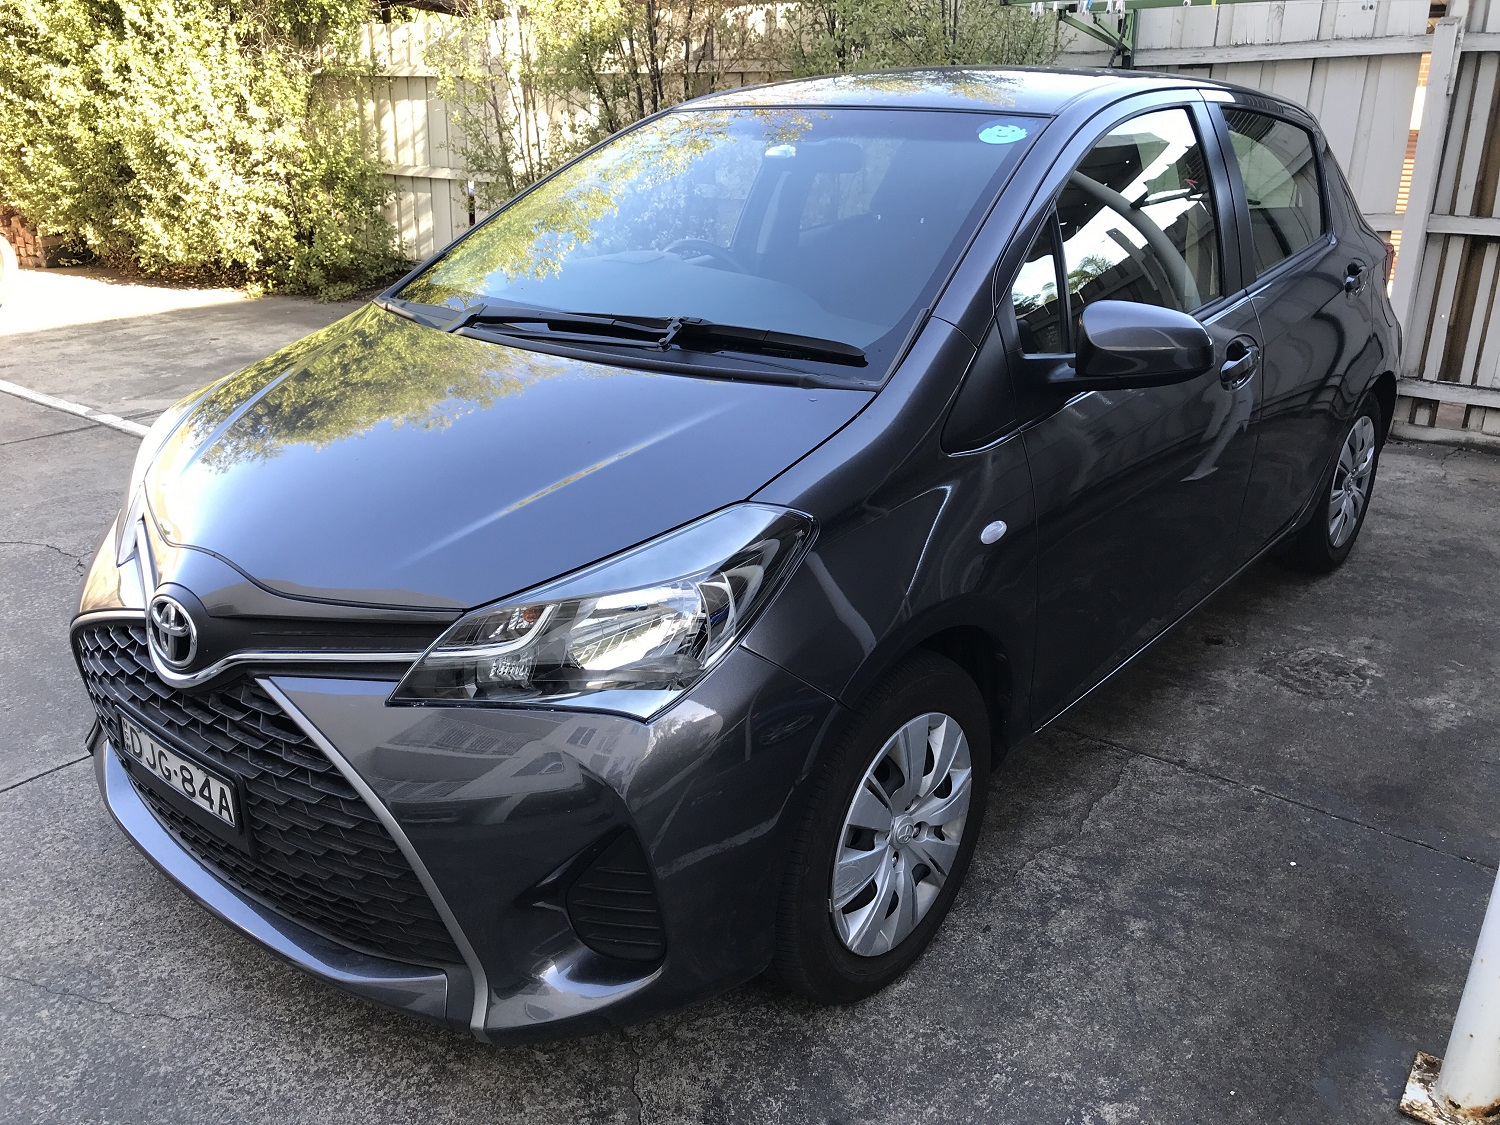 Picture of Shlomo's 2016 Toyota Yaris